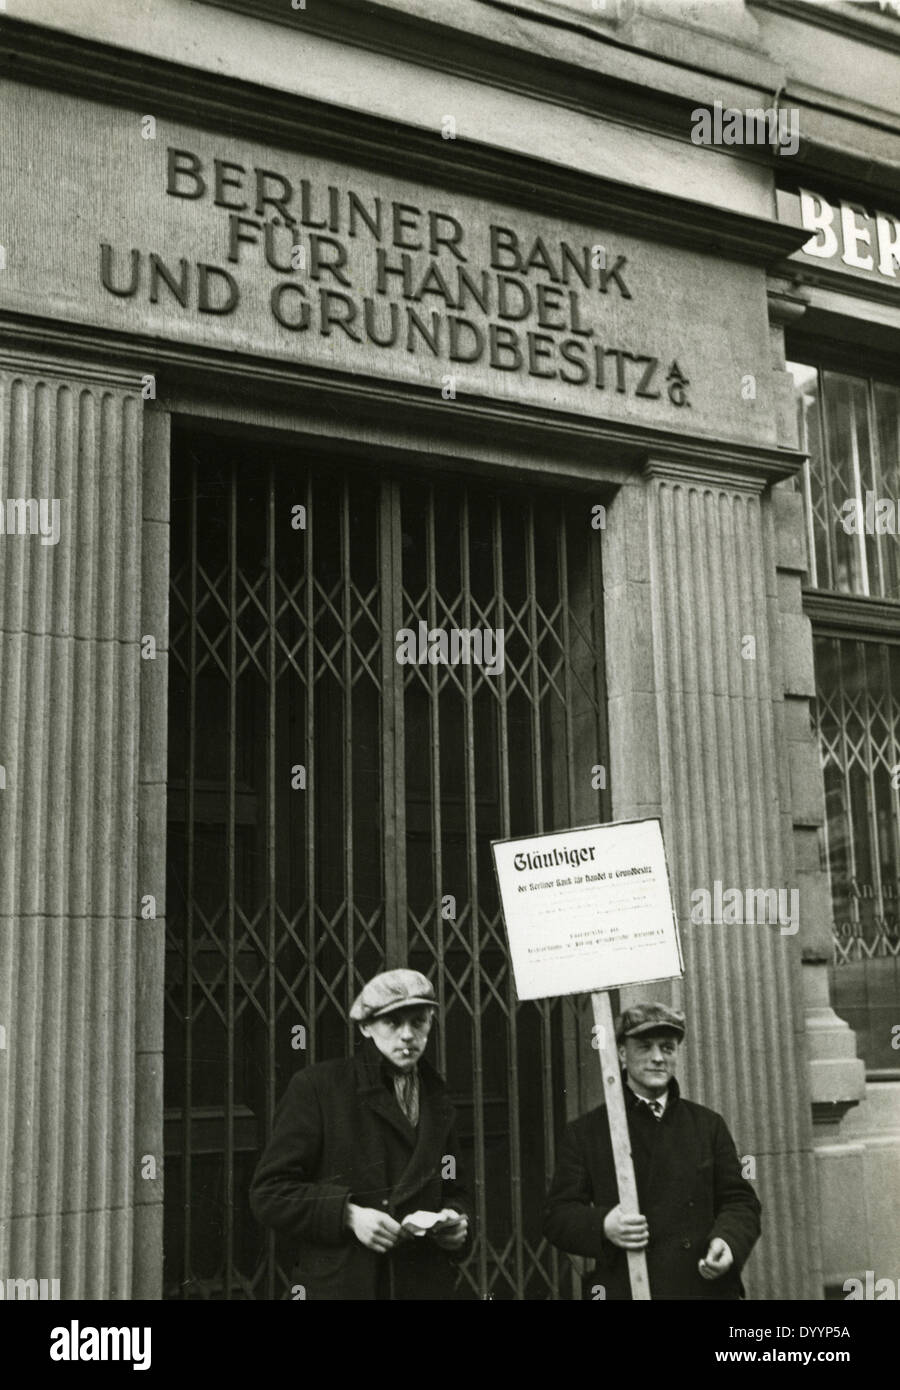 World economic crisis: banks, stock market, Protest in front of a bank during the Great Depression in Berlin, 1931 - Stock Image